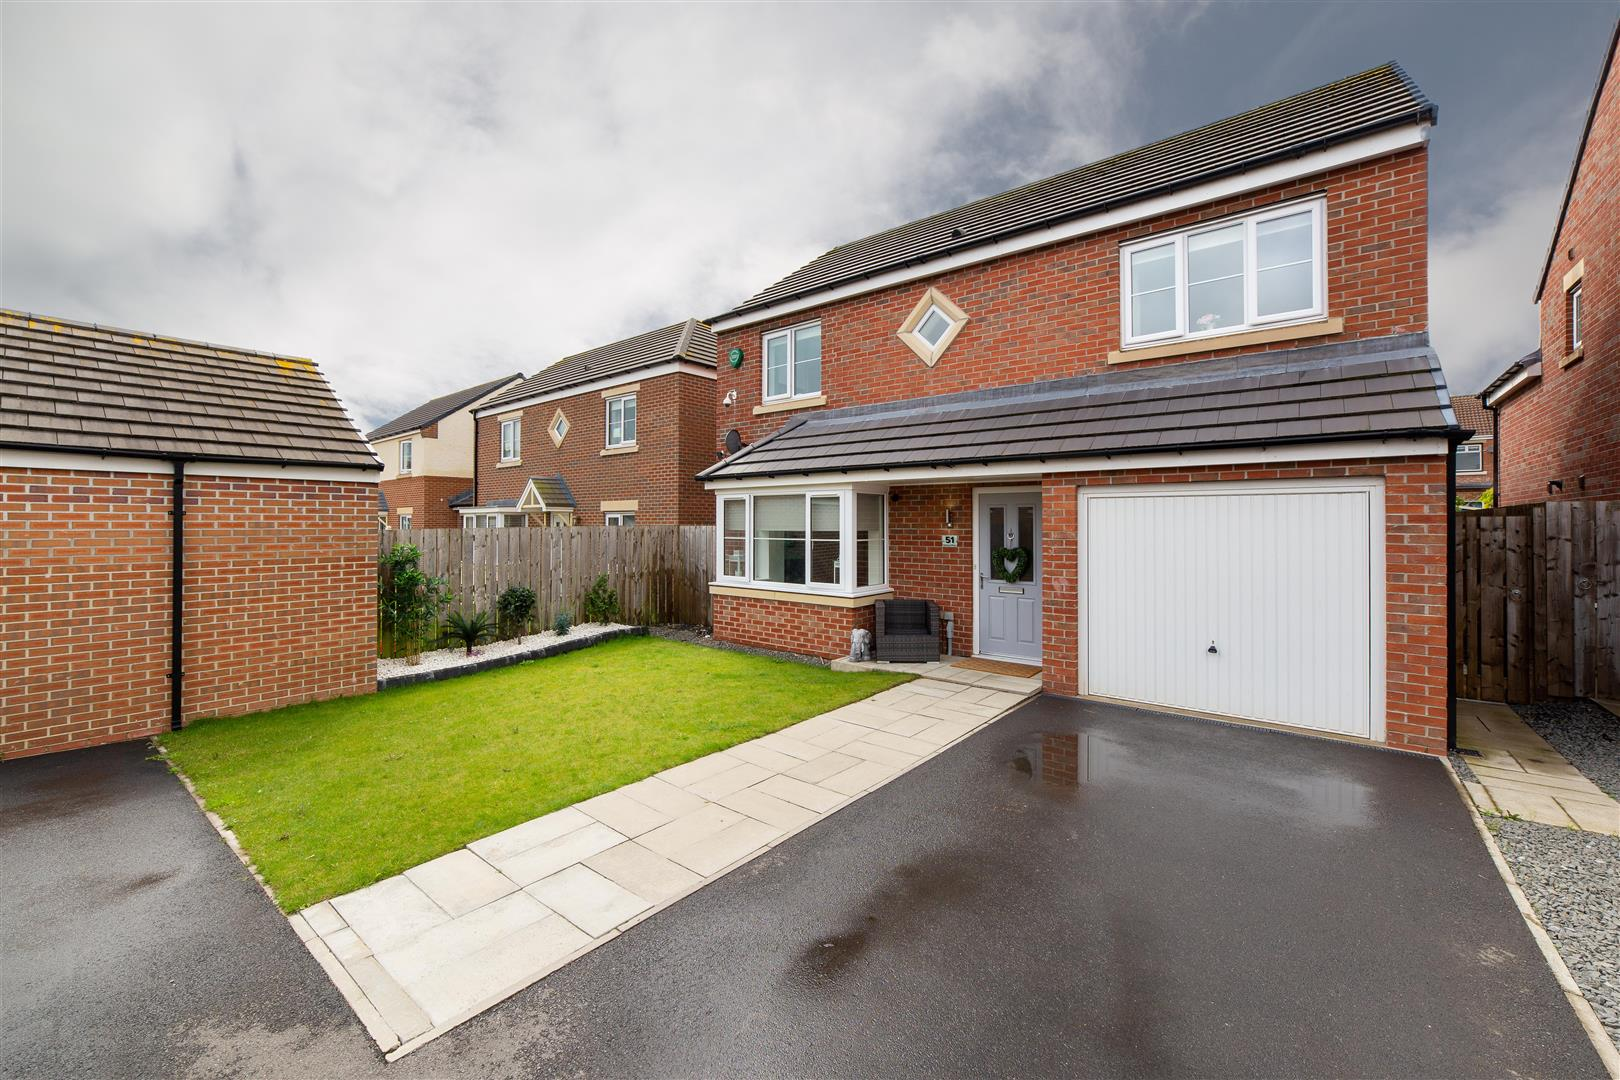 4 bed detached house for sale in Newcastle Upon Tyne, NE13 6LE 0